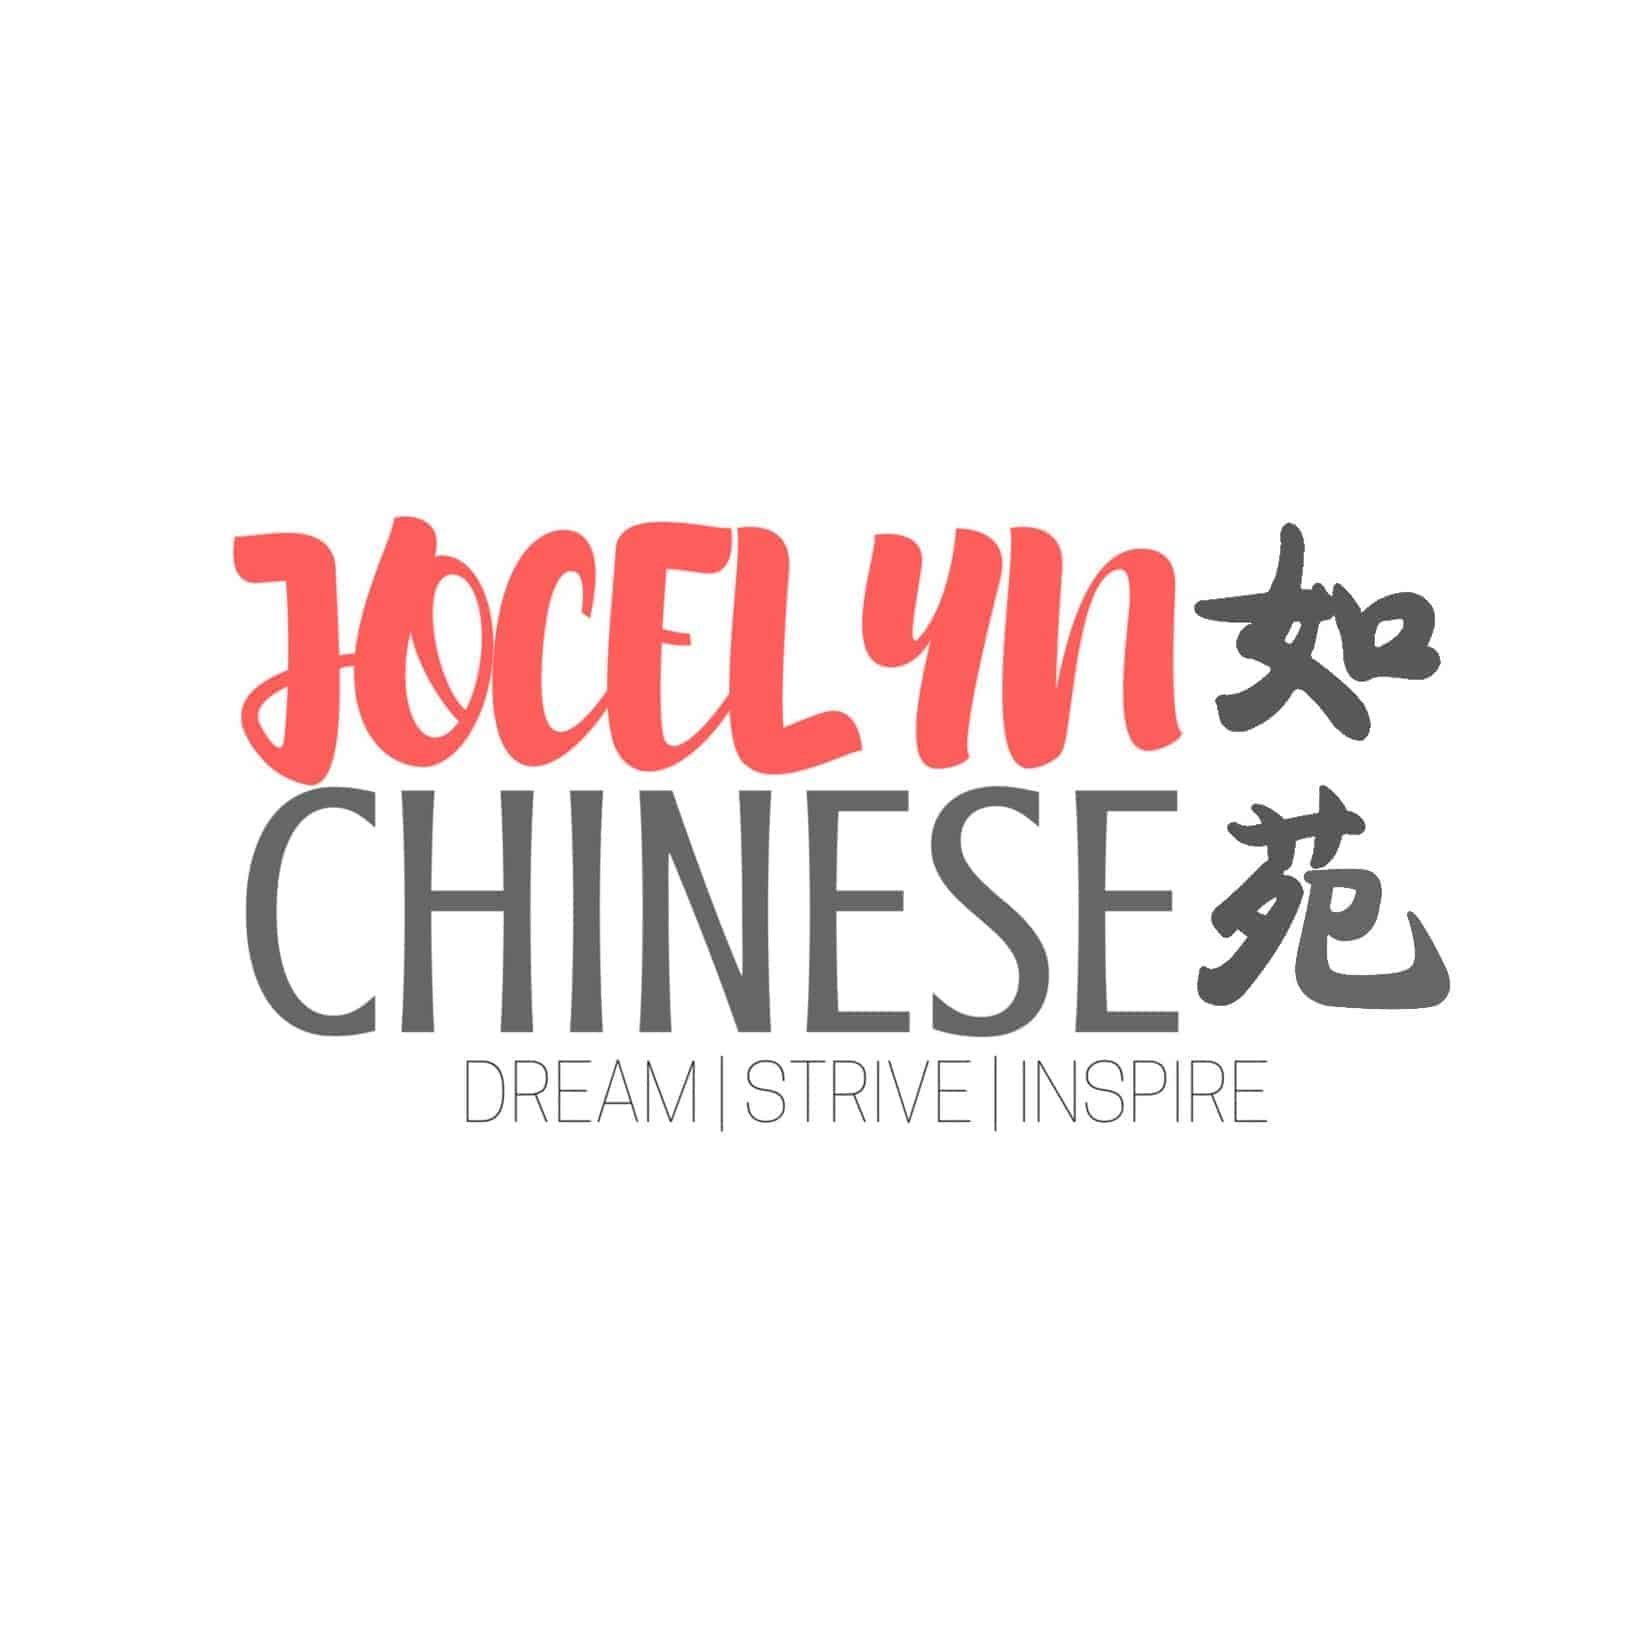 Jocelyn Chinese Tuition Centre - Dream Strive Inspire